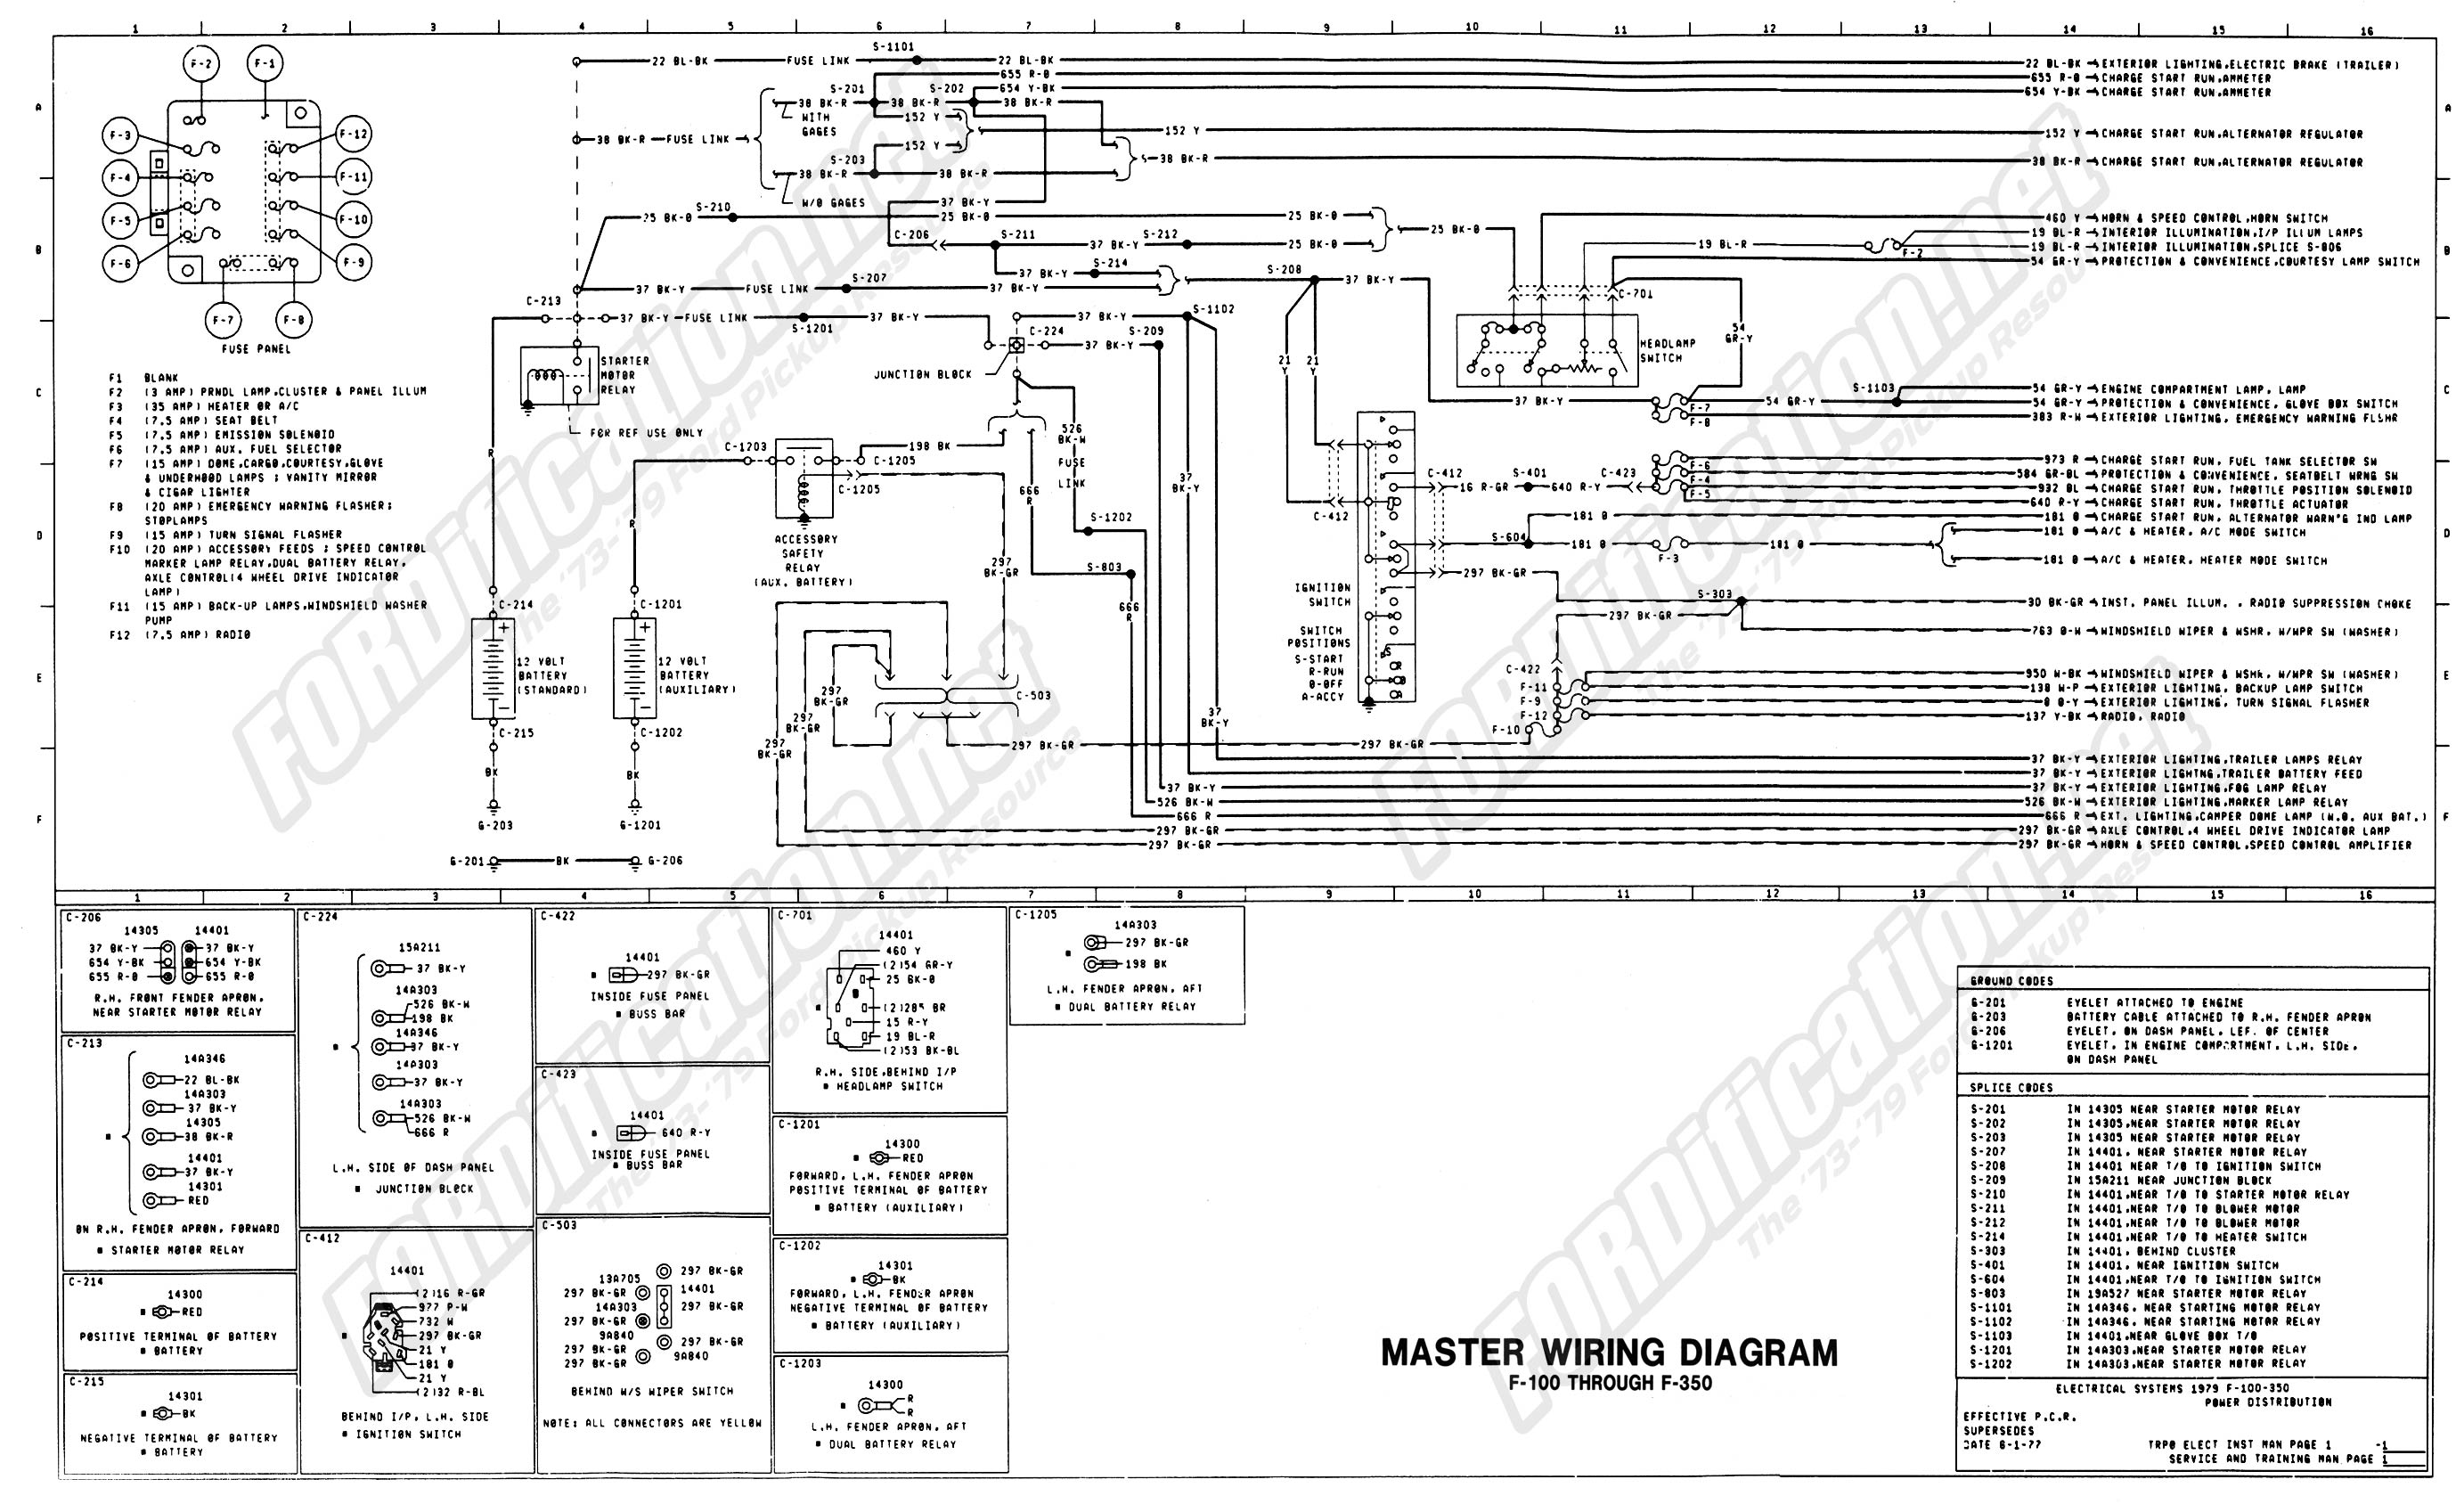 1979 f100 ignition switch wiring diagram positions? ford ford truck parts diagrams 71 ford truck wiring diagram #11